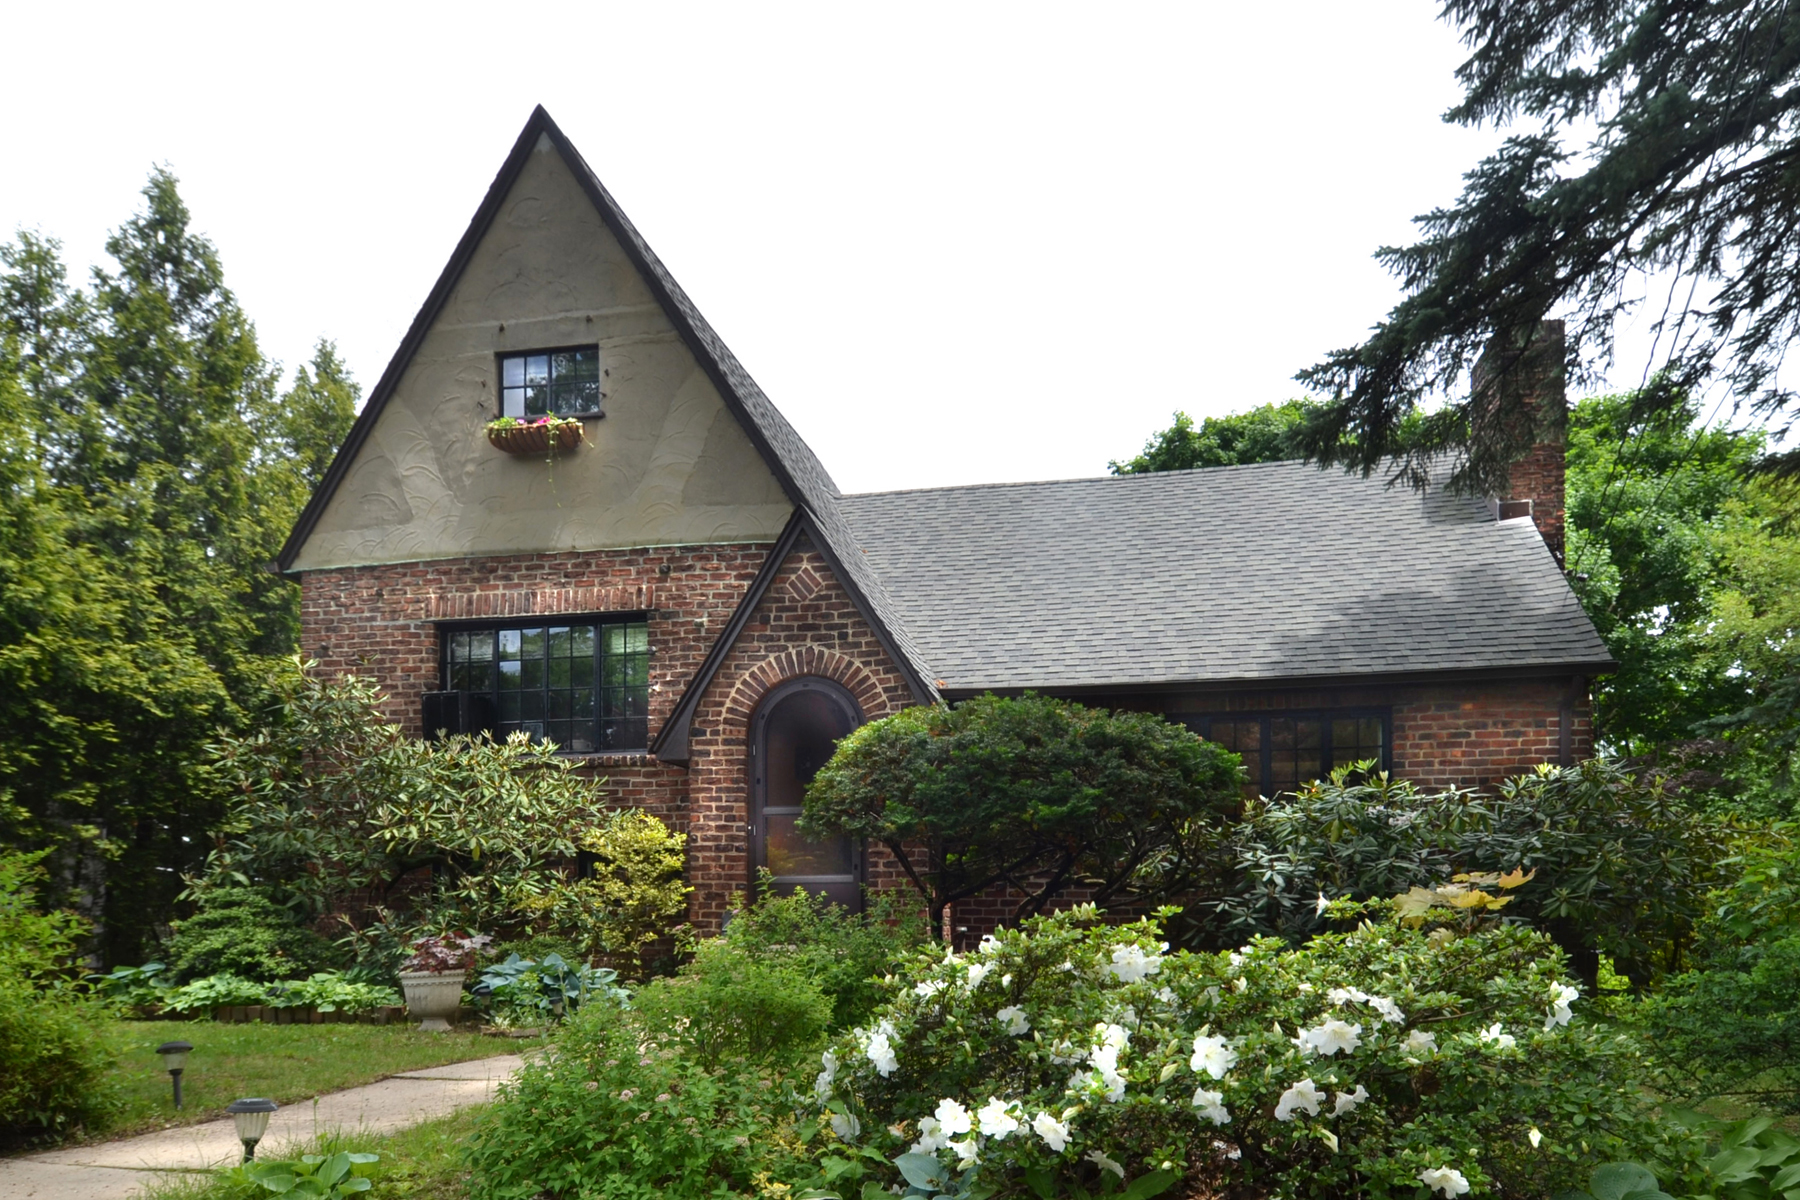 Single Family Home for Sale at Pelhamwood Tudor 49 Green Place New Rochelle, New York, 10801 United States